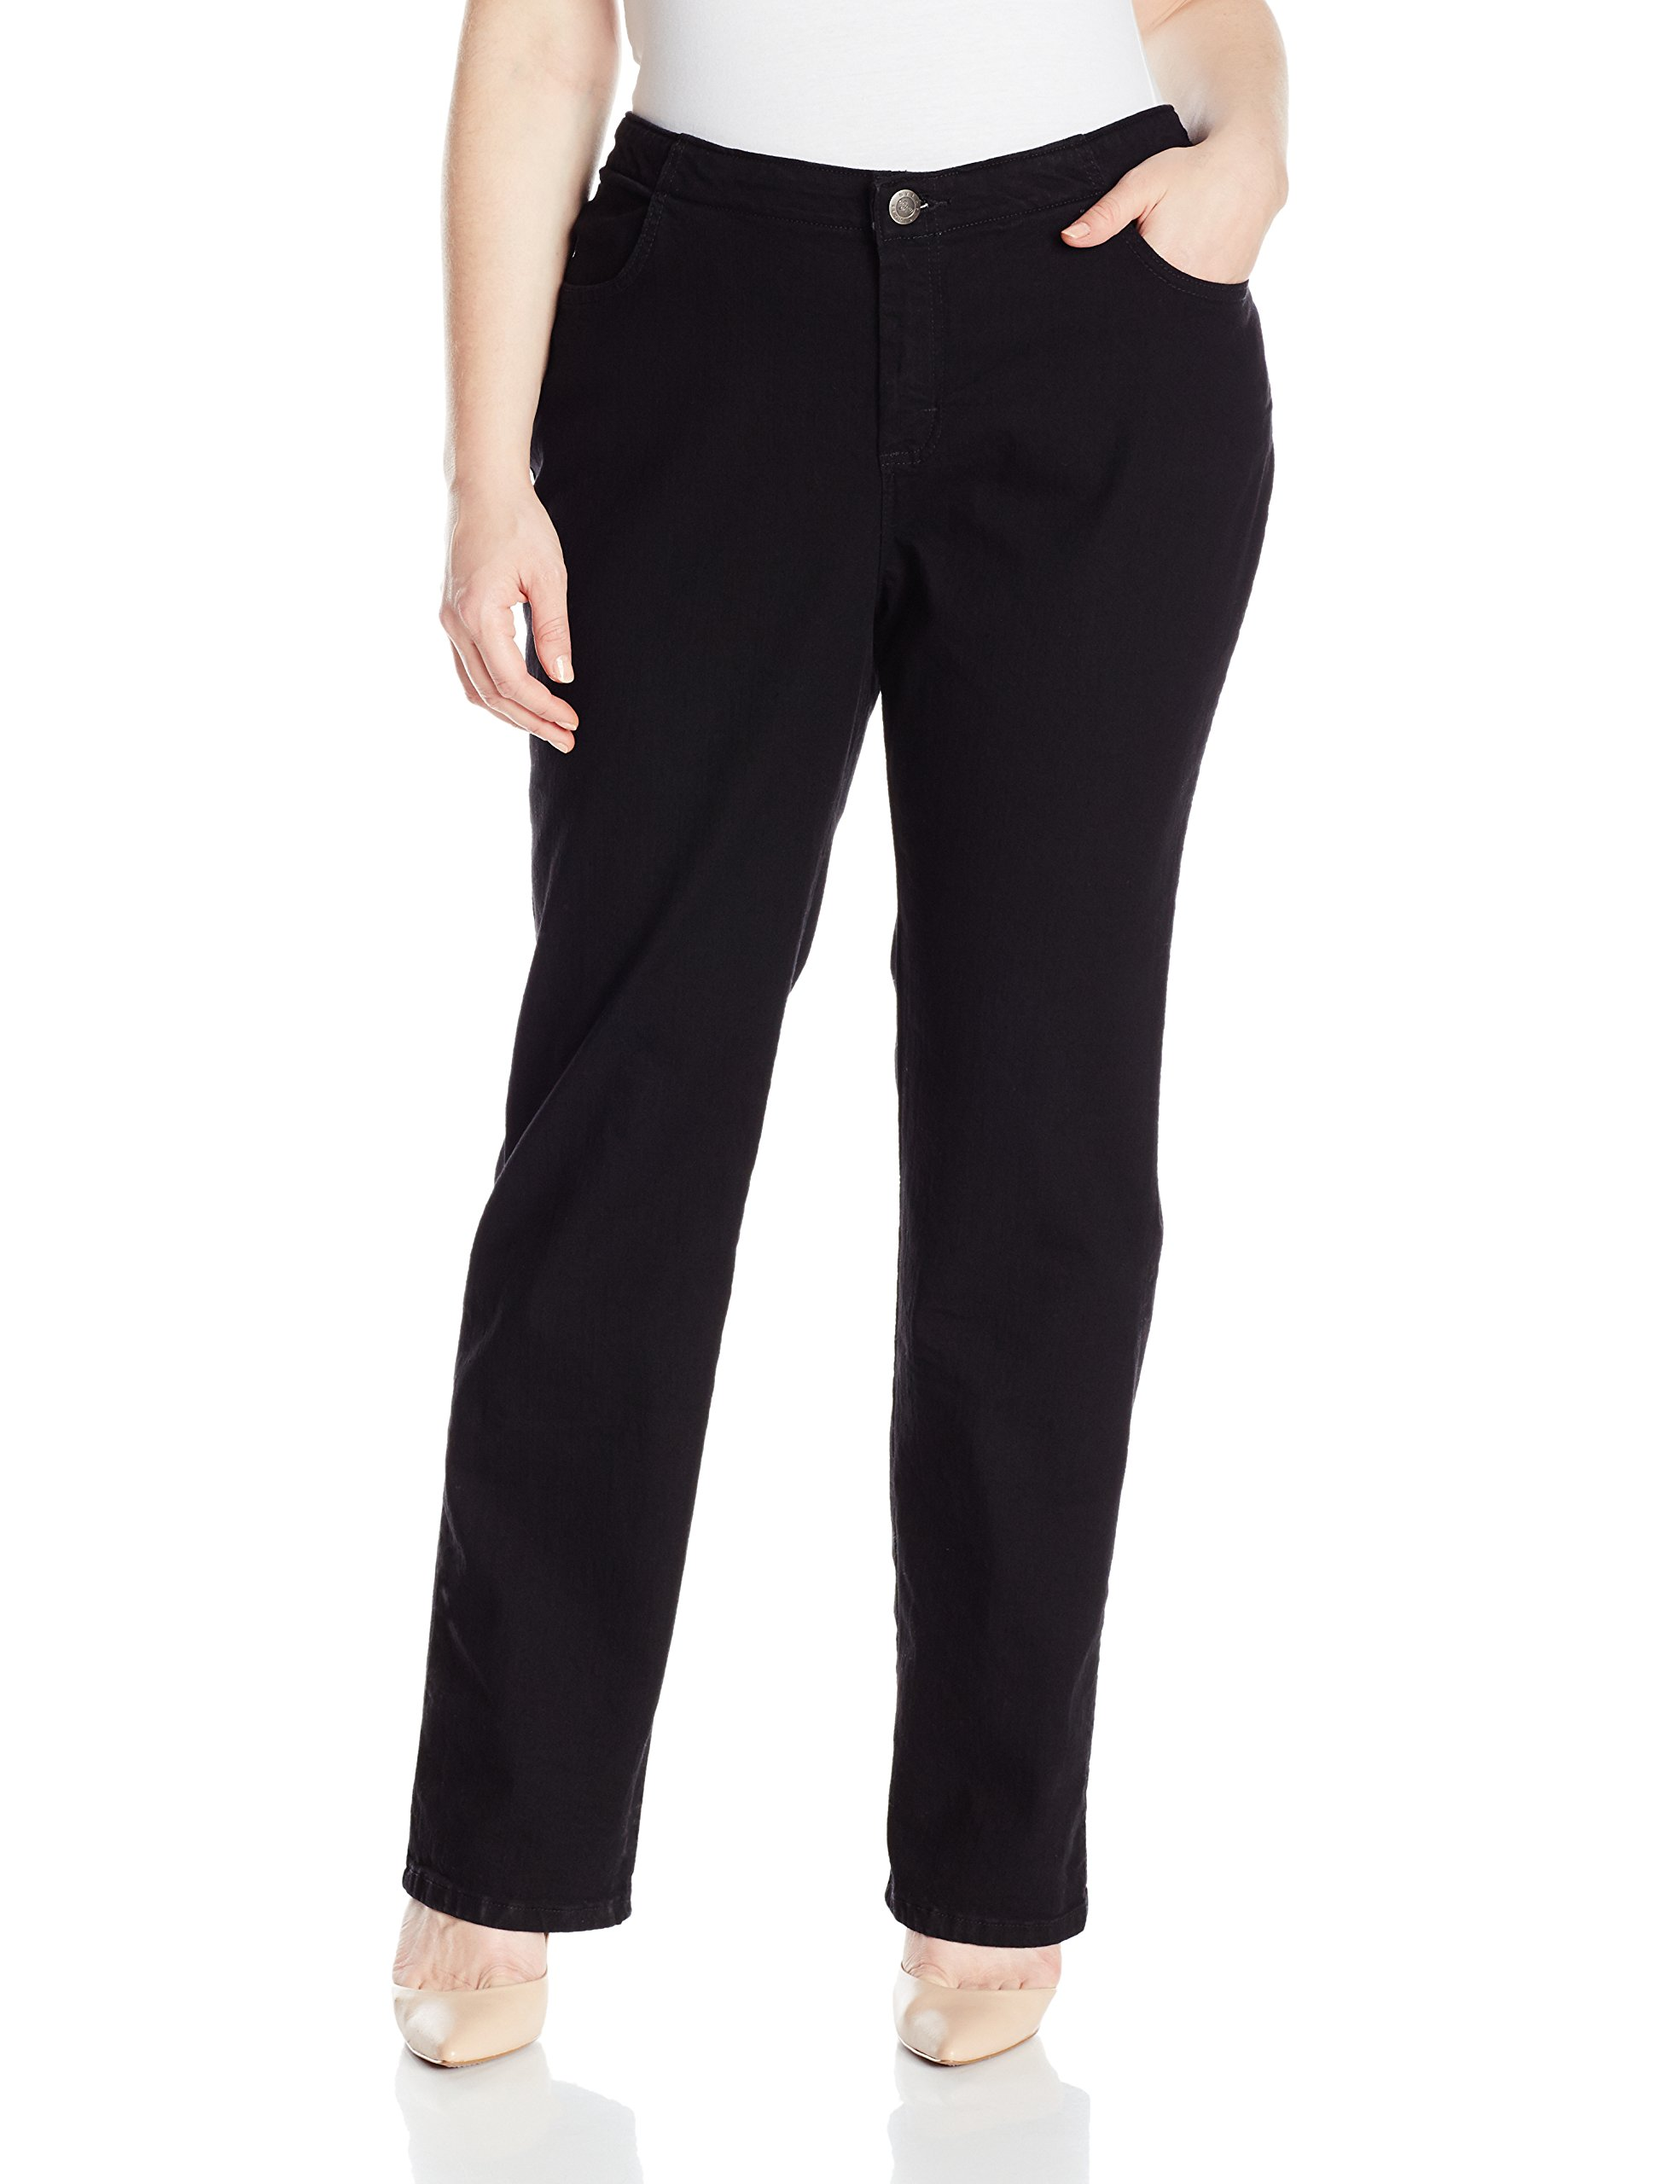 Riders by Lee Indigo Women's Petite Plus Size Comfort Collection Straight Leg Jean, Black, 20P by Riders by Lee Indigo (Image #1)